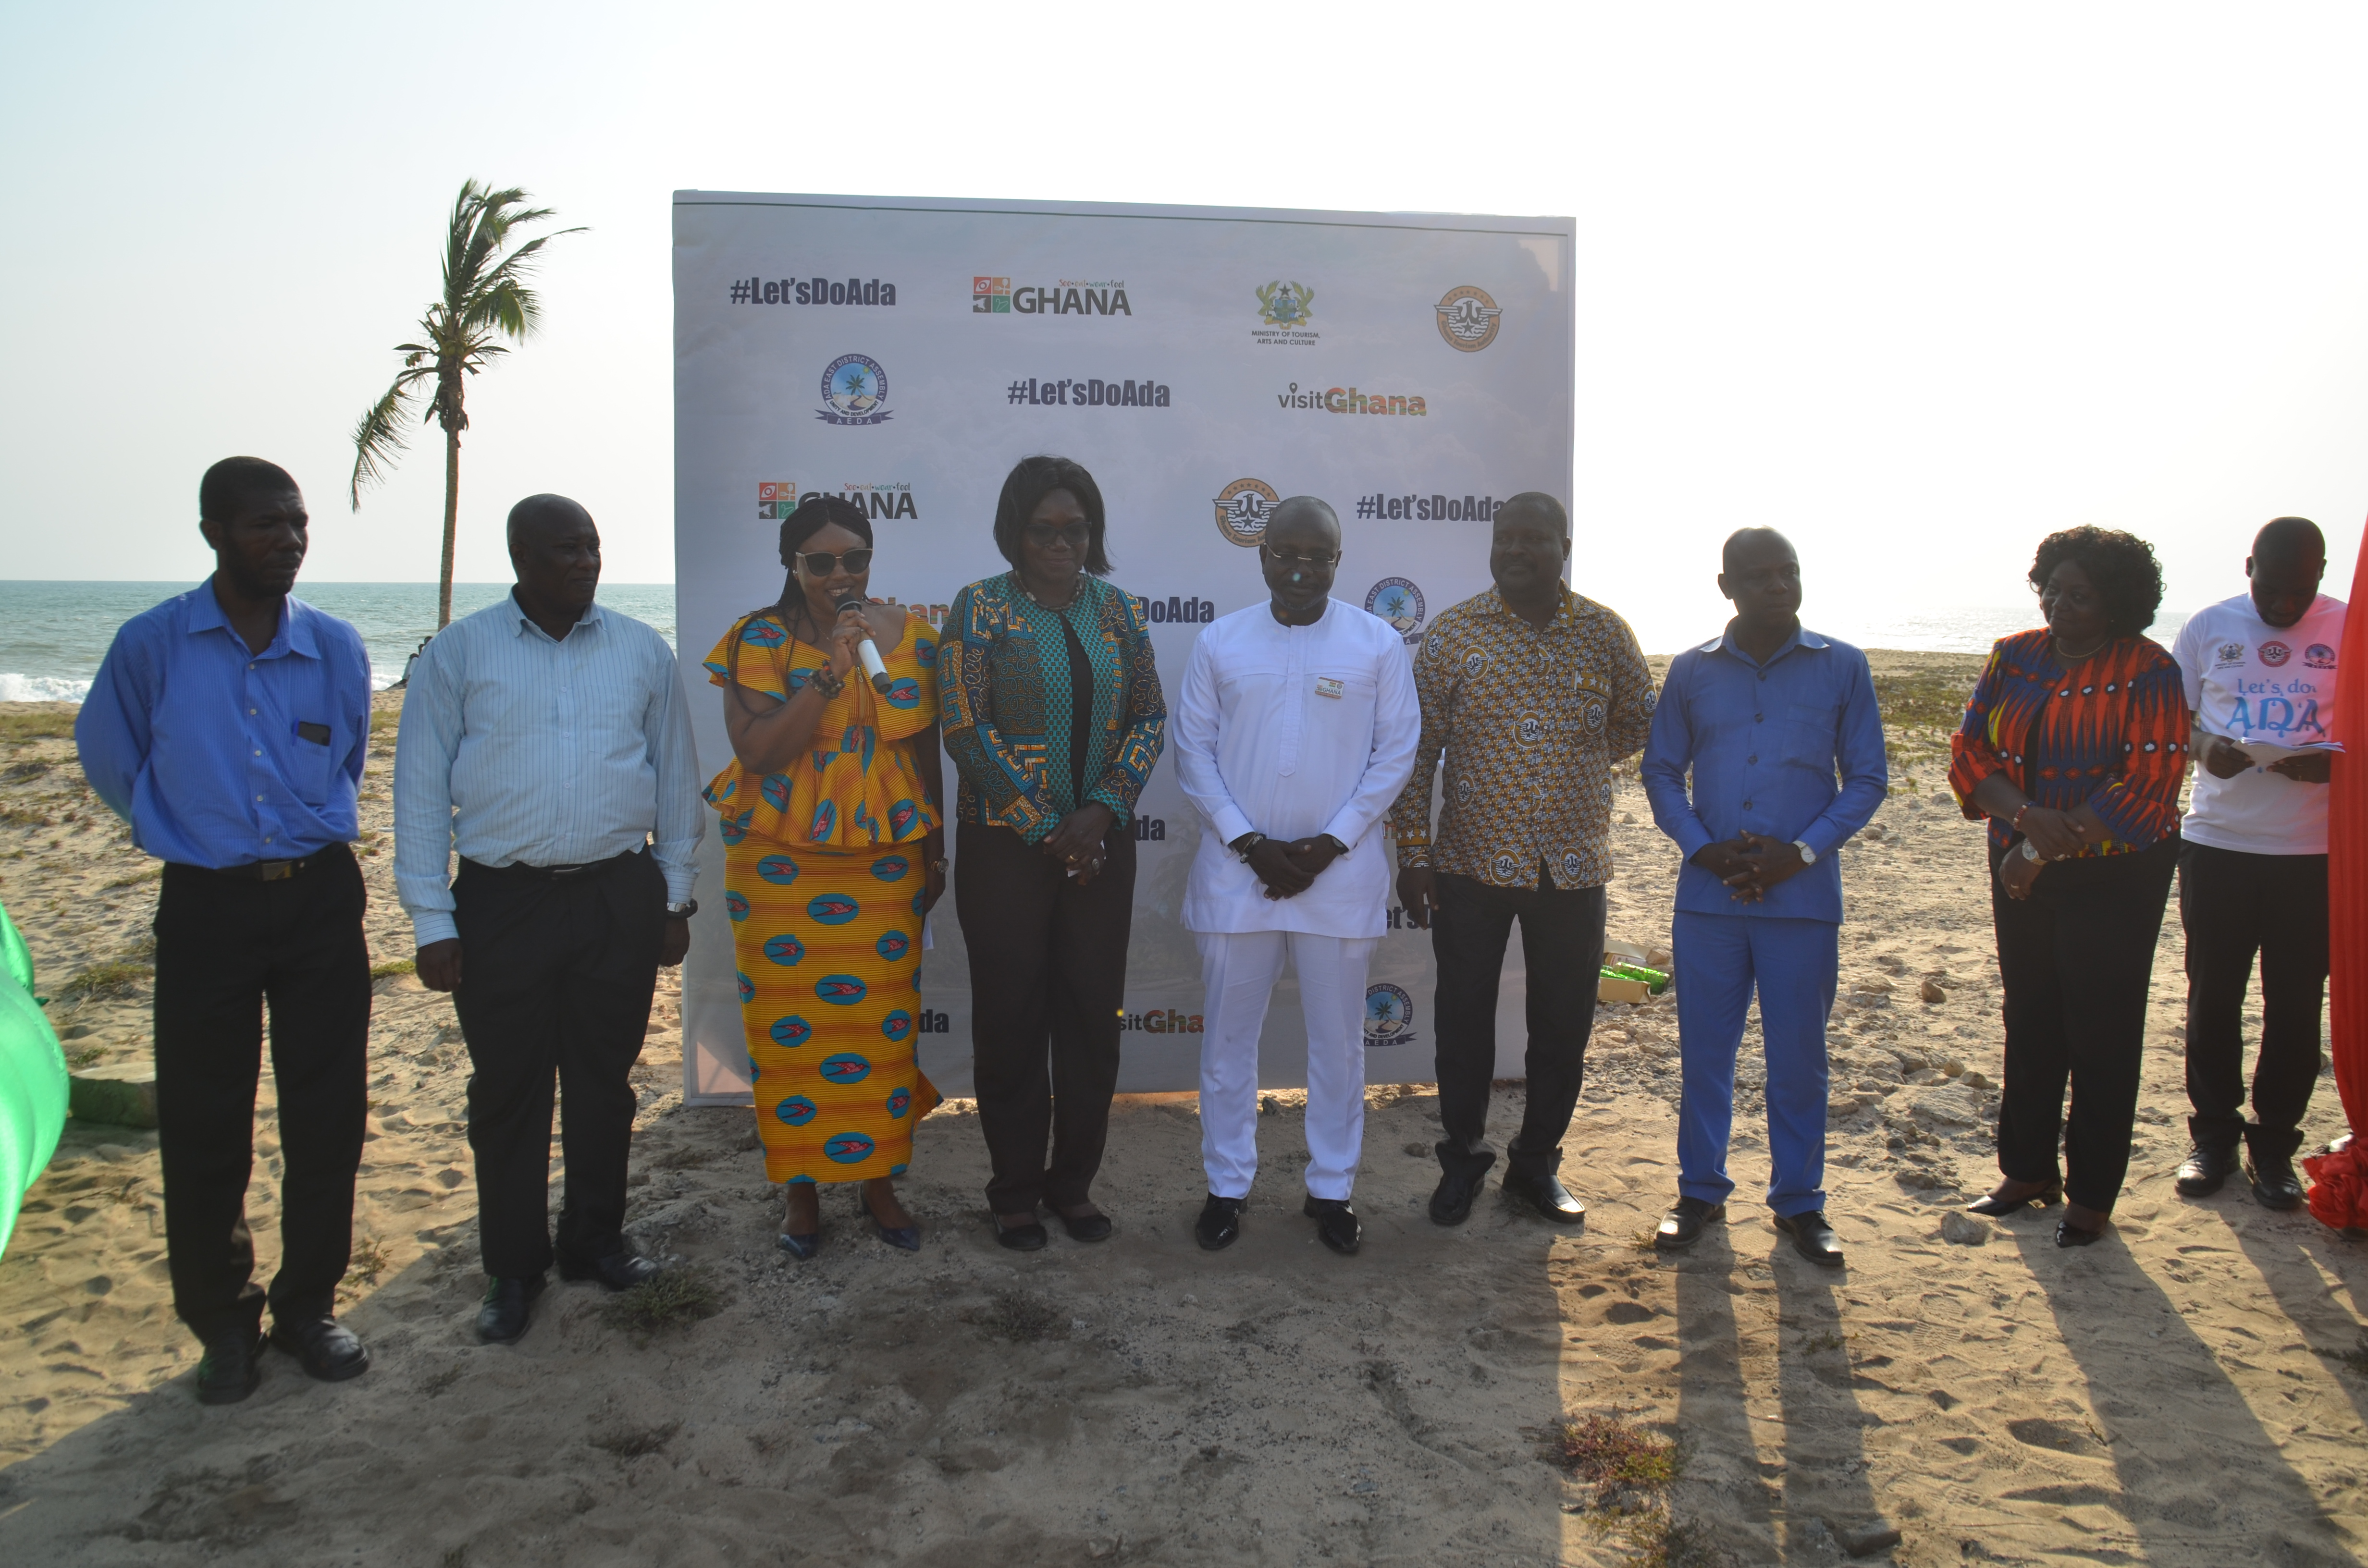 Ada as a tourism enclave launched; area to see massive tourism developments